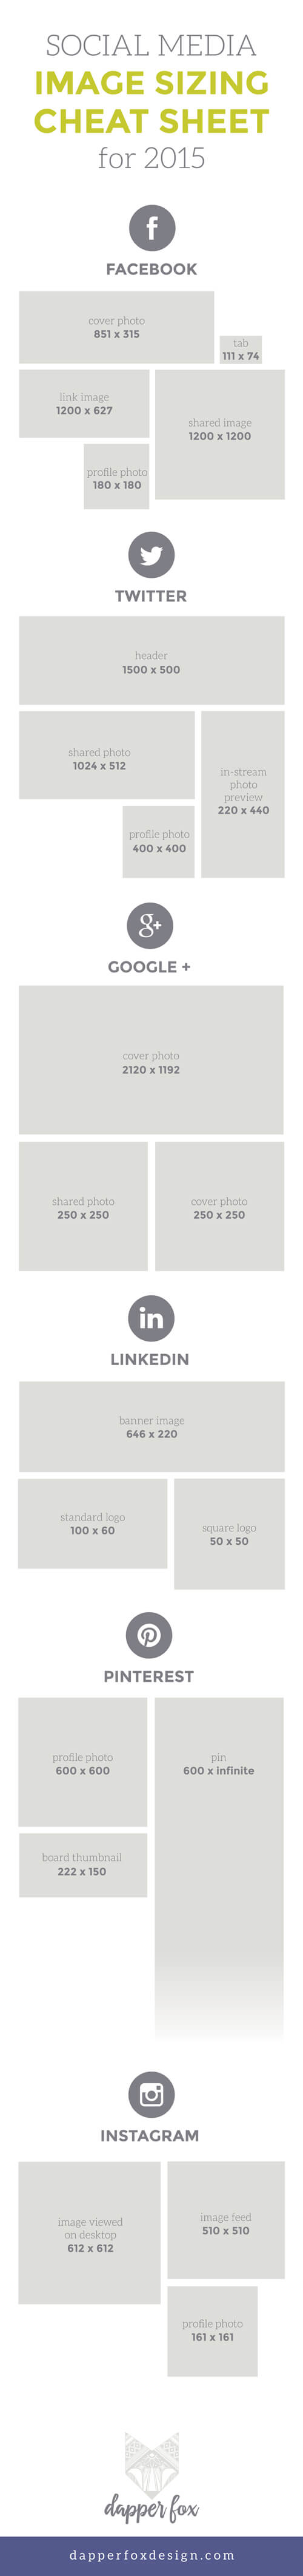 2015 Social Media Image Sizing Cheat Sheet by Dapper Fox Design//   Website Design - Branding - Logo Design - Entrepreneur Blog and Resource